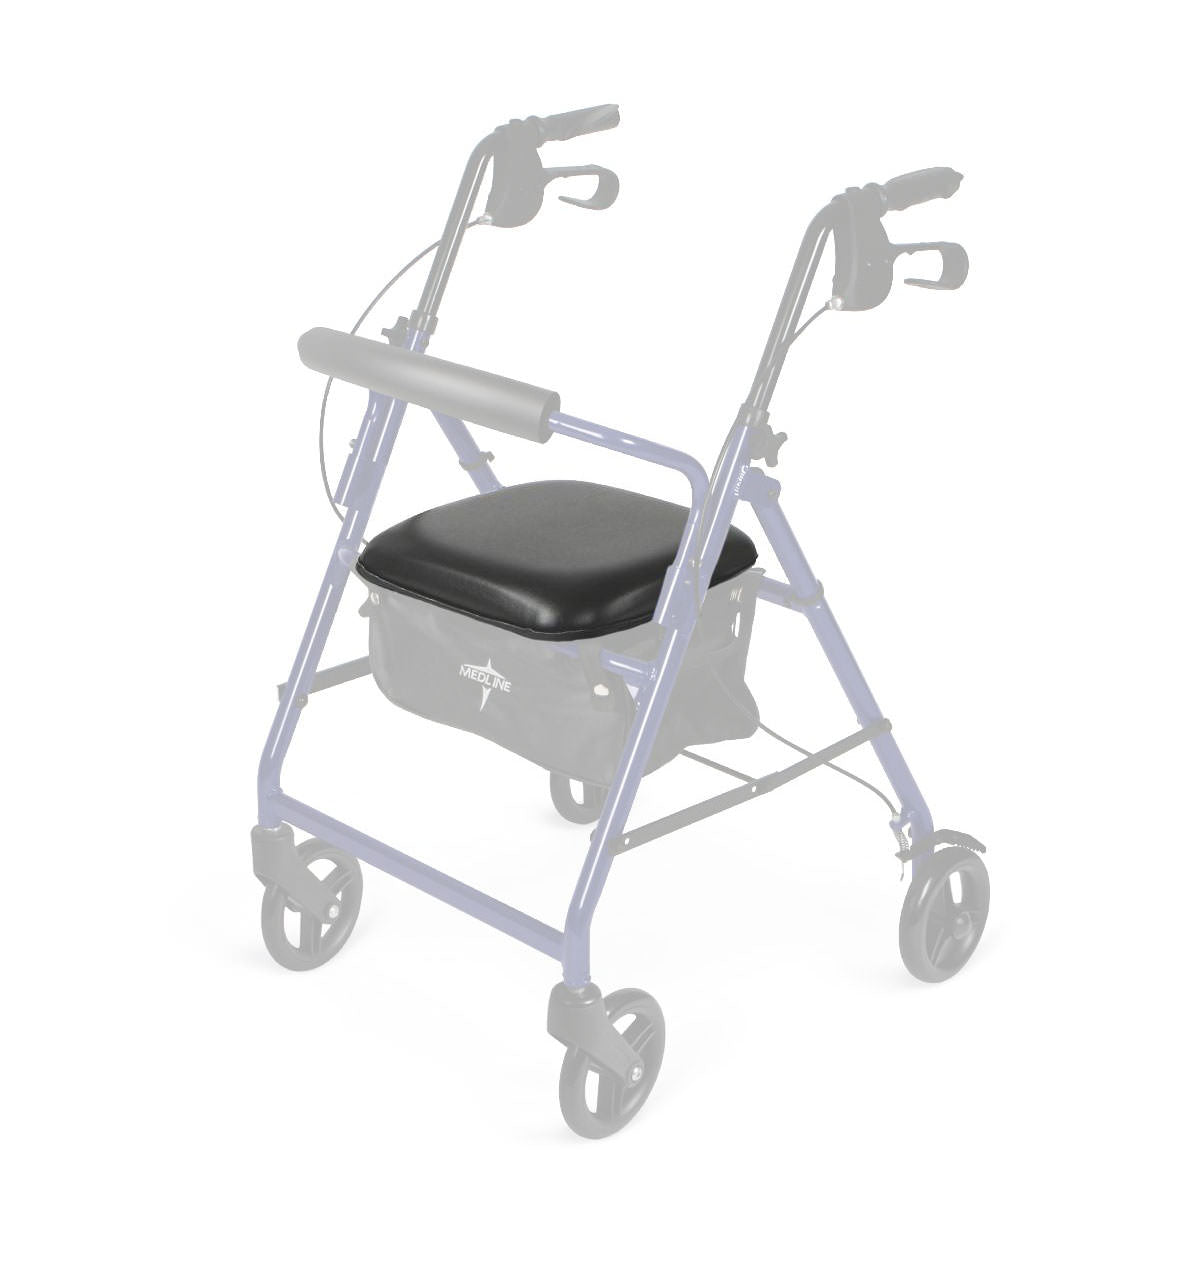 Seat Assembly with Hardware for Medline Economy Rollator